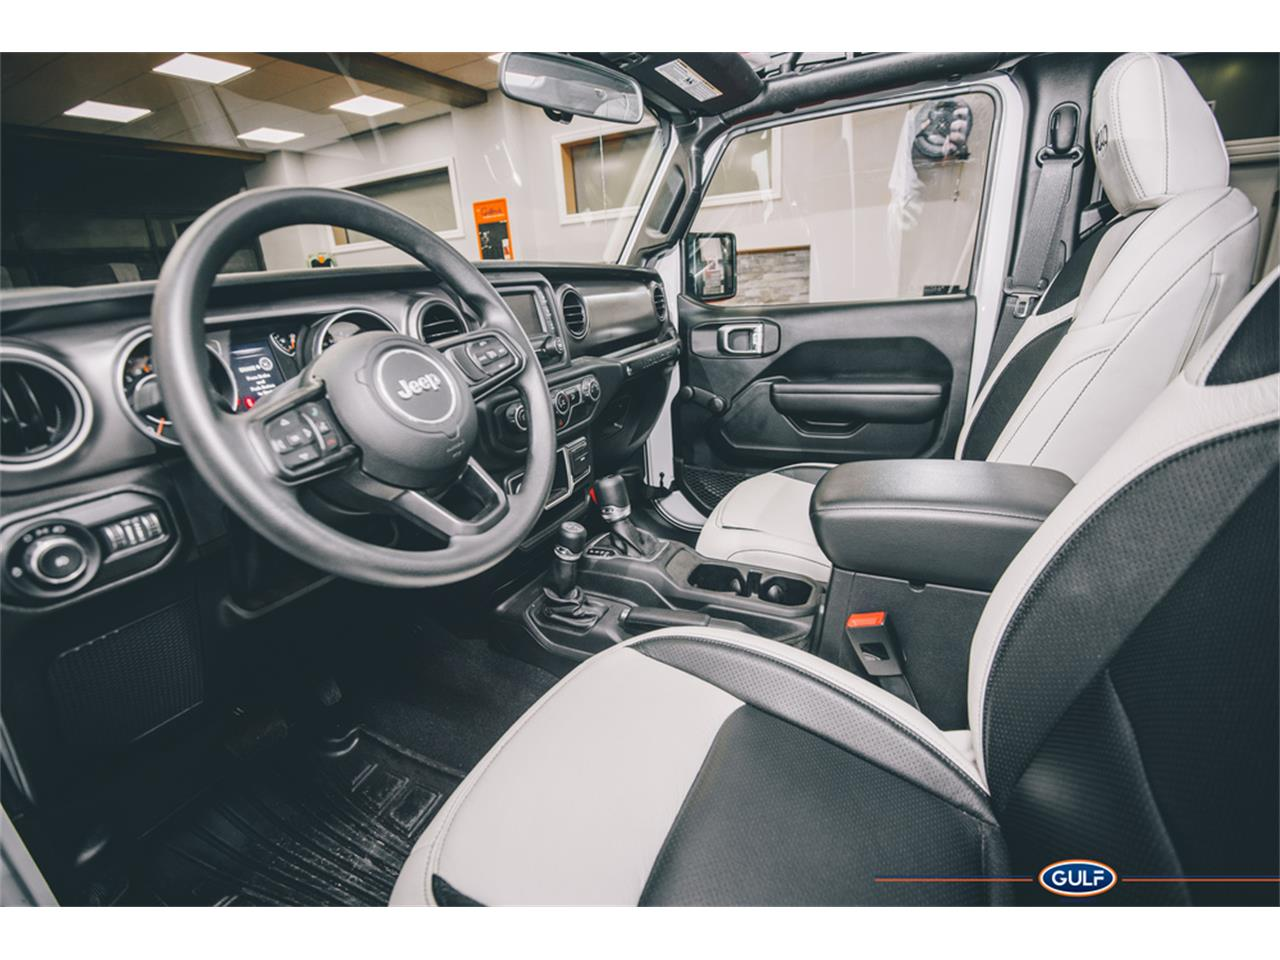 Large Picture of 2018 Jeep Wrangler located in Uncasville Connecticut Auction Vehicle Offered by Barrett-Jackson - QCK1